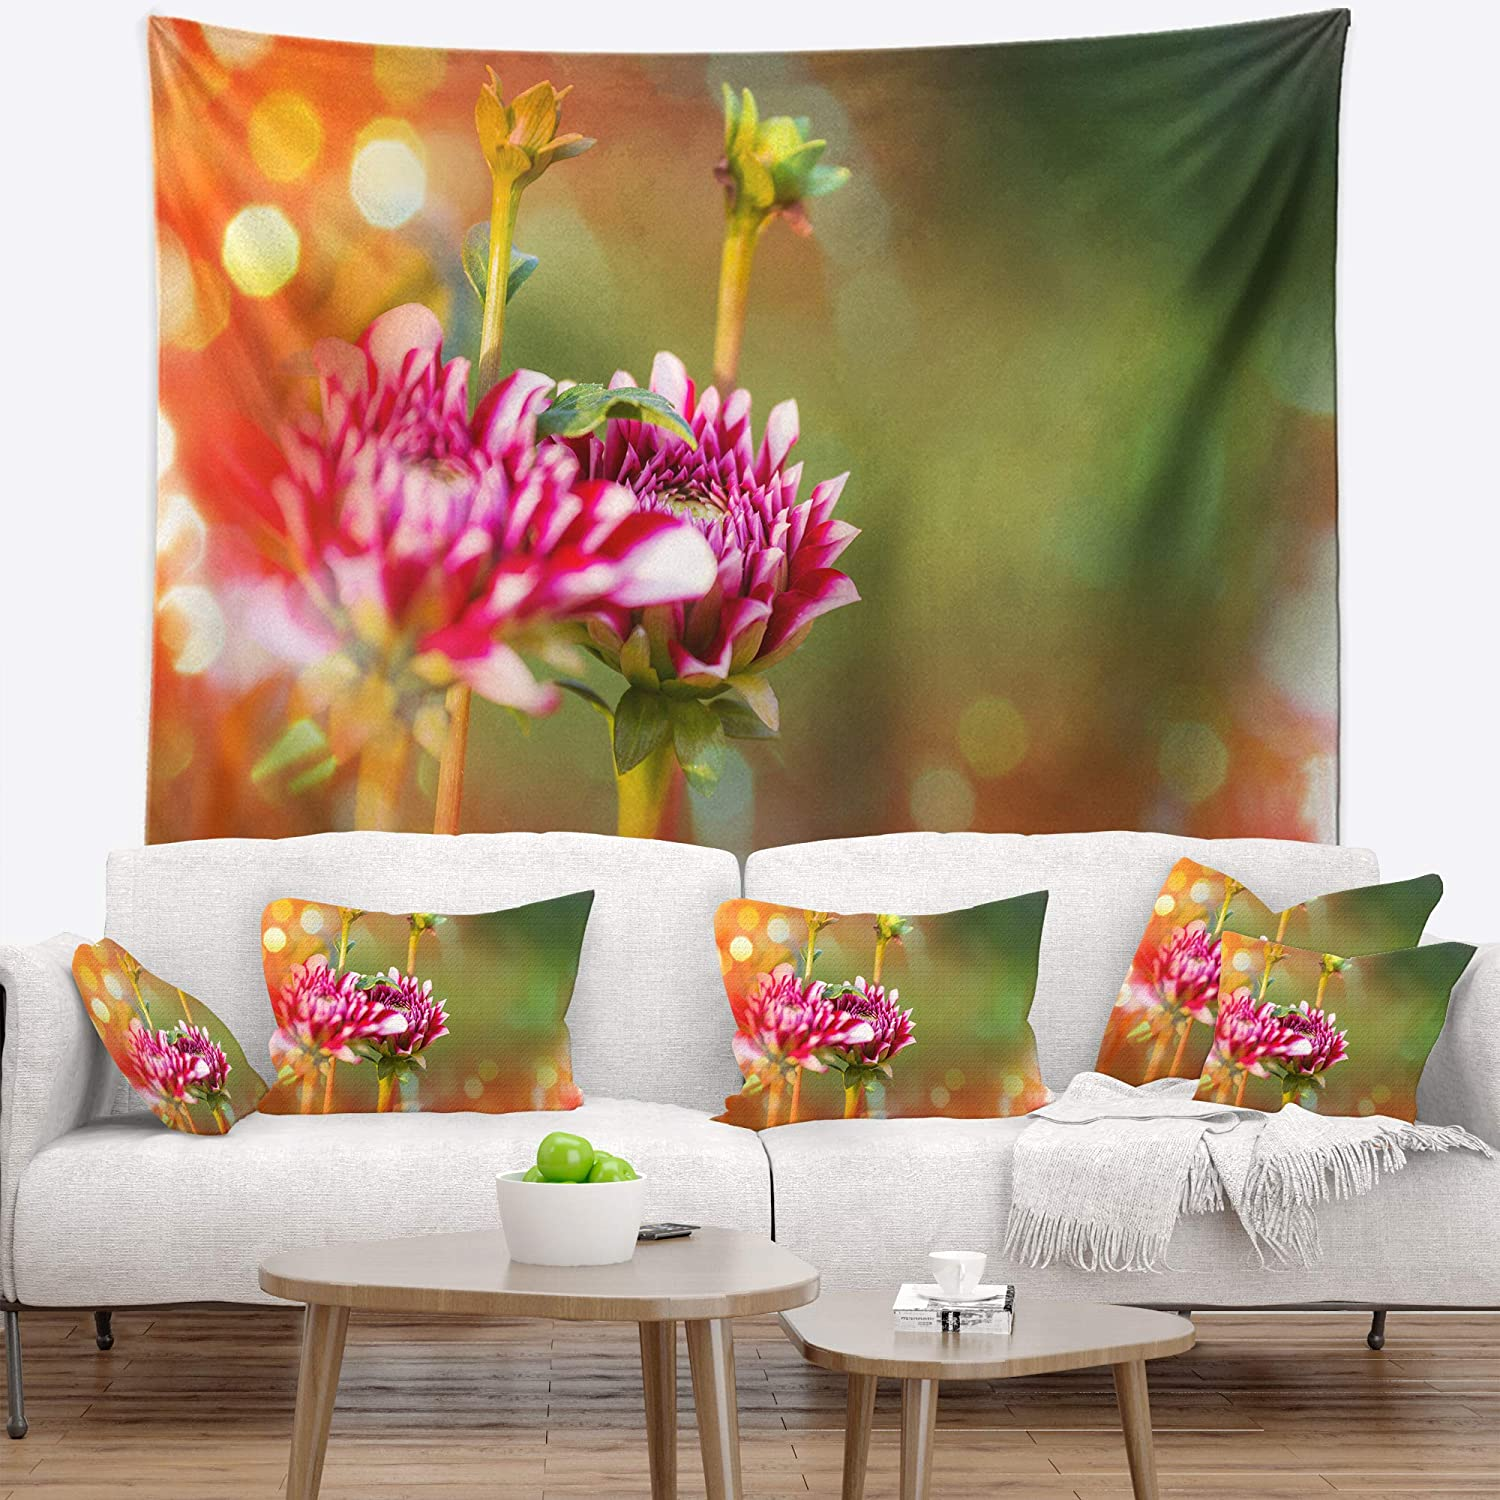 Designart TAP12338-39-32  Pink Blurred Background Flower Blanket D/écor Art for Home and Office Wall Tapestry Medium in x 32 in 39 in